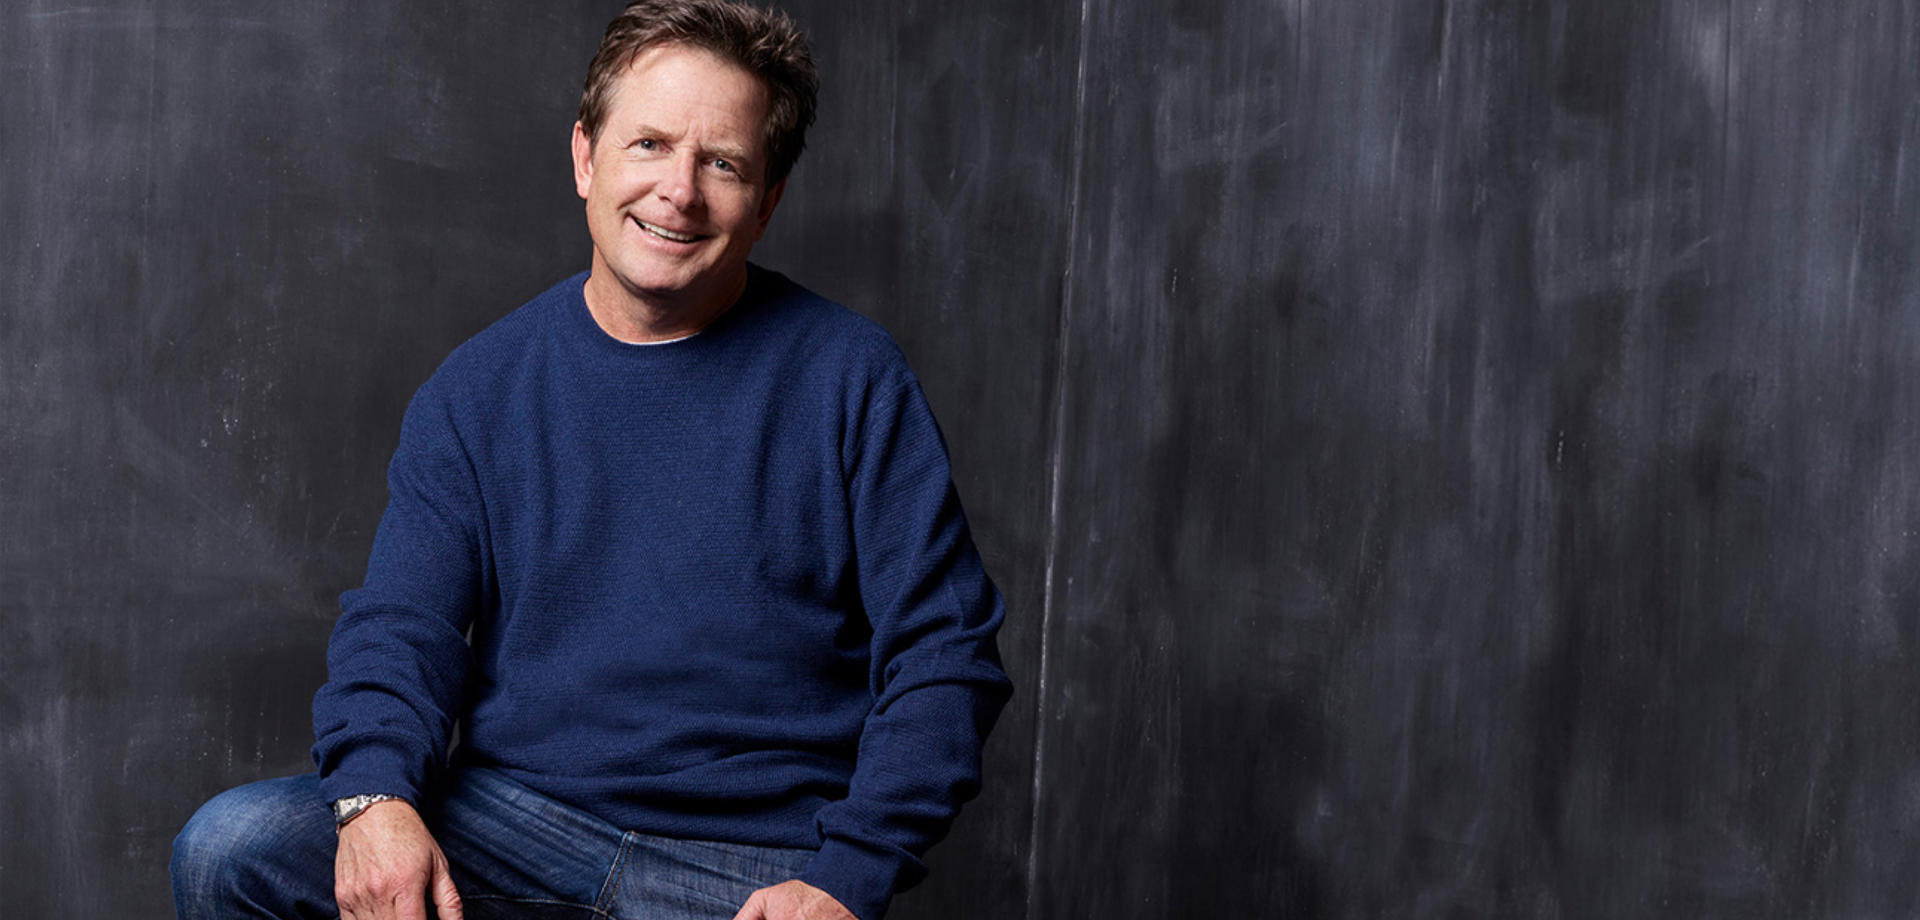 The Michael J Fox Foundation For Parkinsons Research